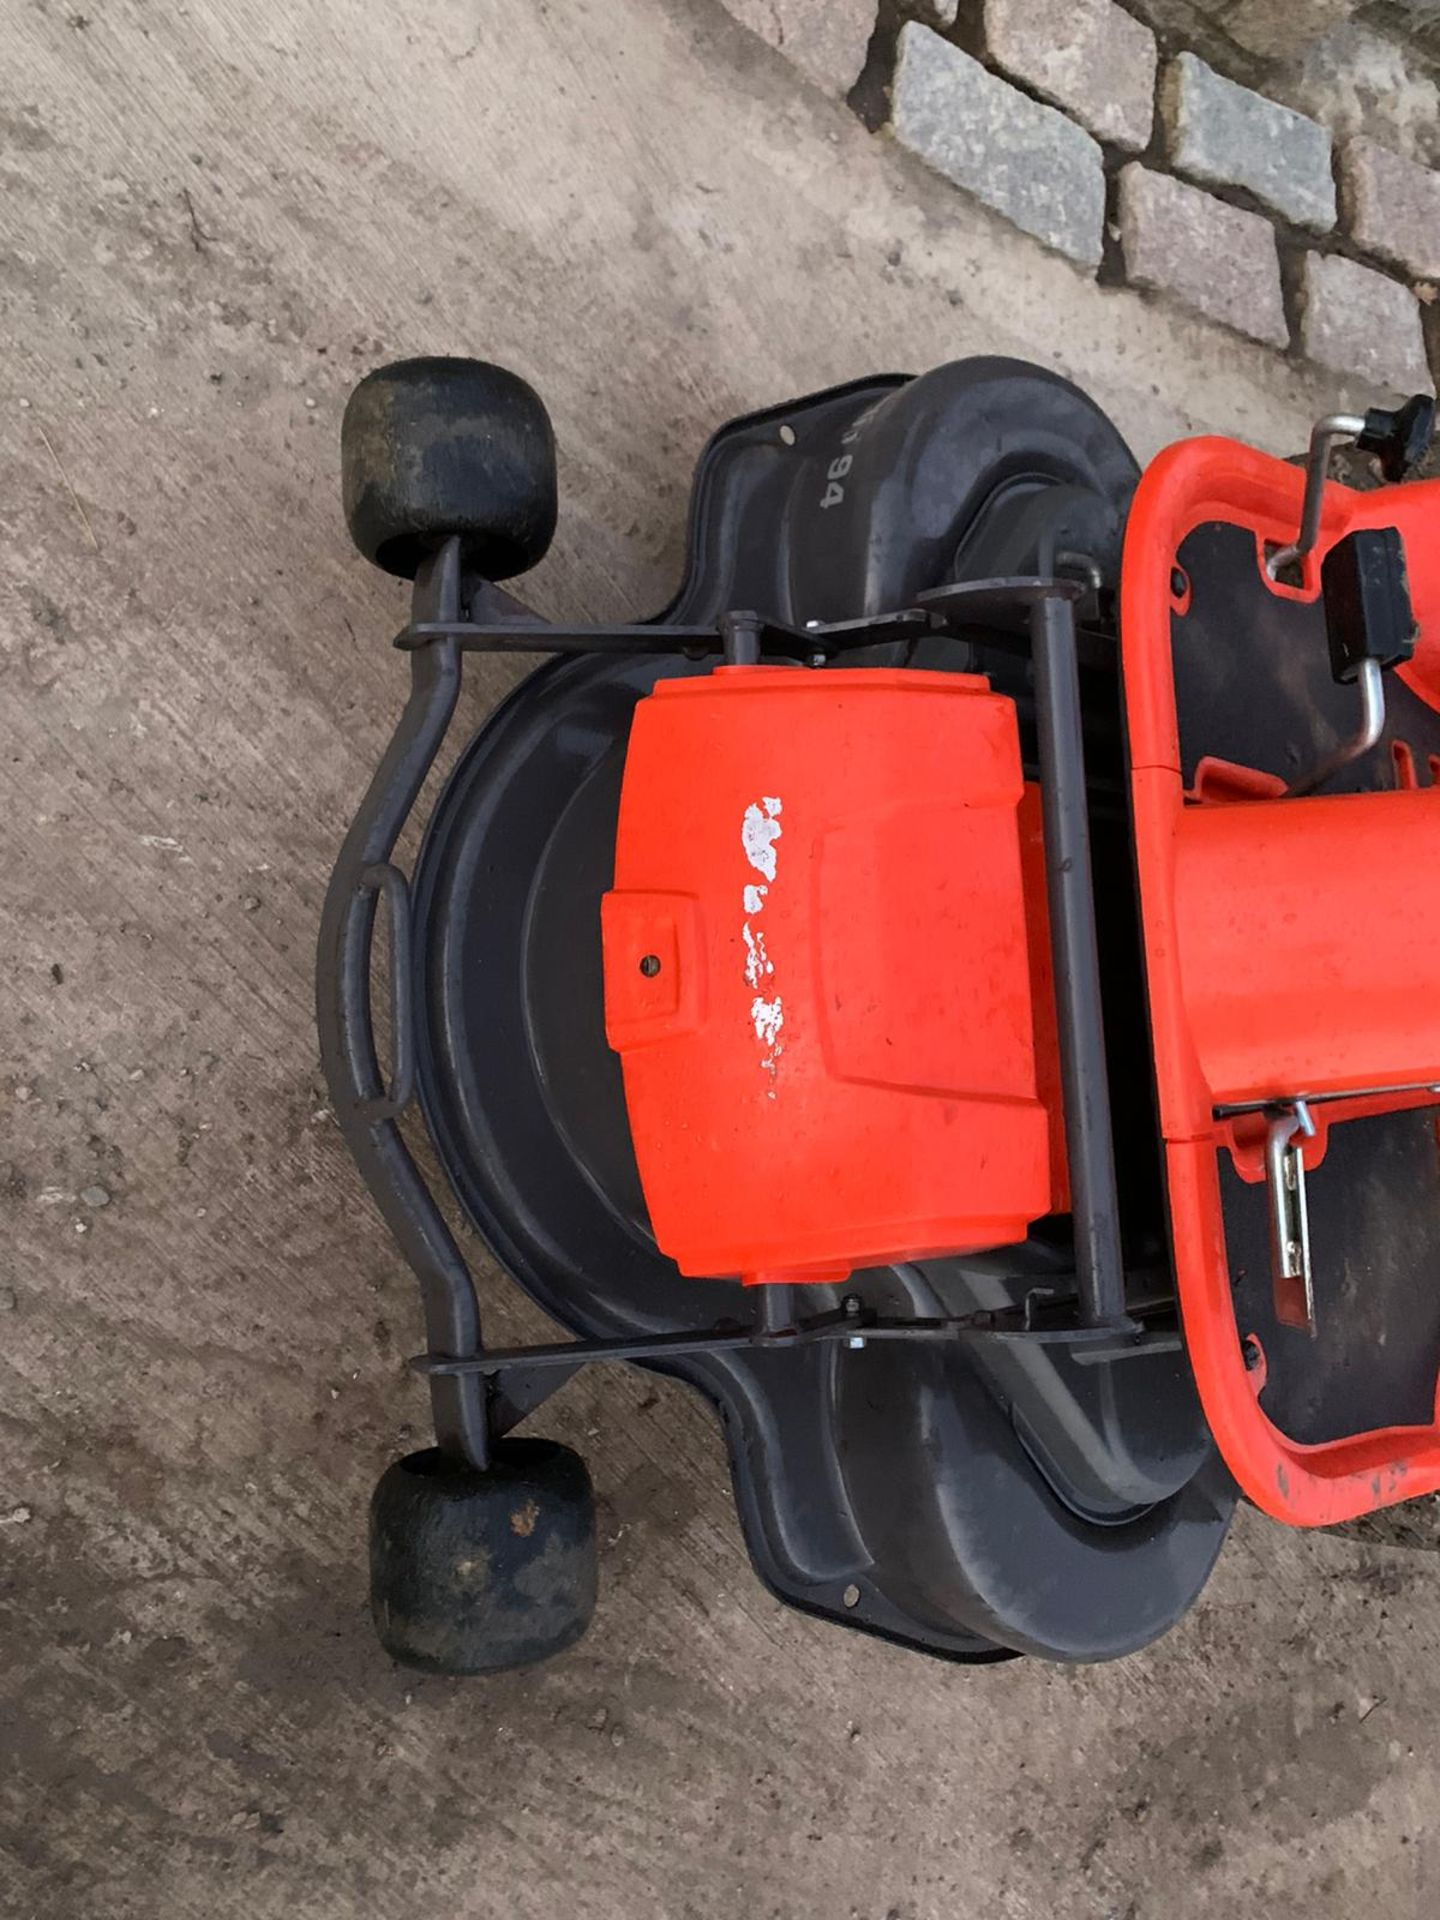 HUSQUVARNA R13C OUT FRONT RIDE ON LAWN MOWER, RUNS, DRIVES AND CUTS *NO VAT* - Image 3 of 5